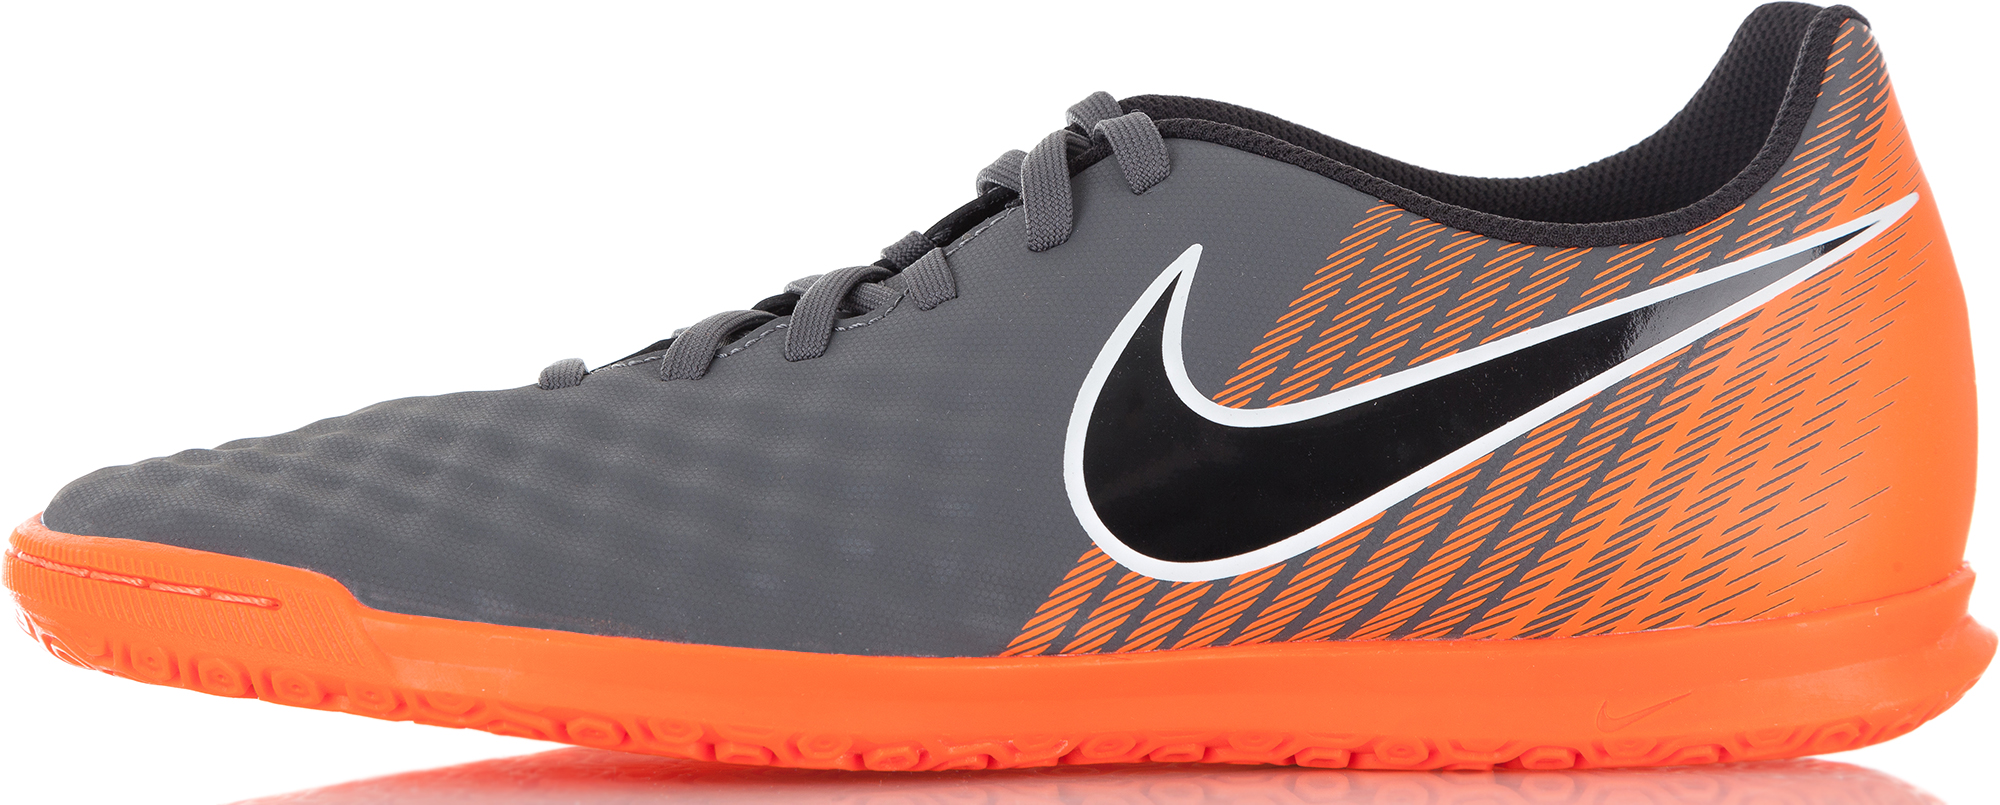 Nike Бутсы мужские Nike Magista ObraX 2 IC бутсы nike бутсы jr mercurialx vapor xi ic